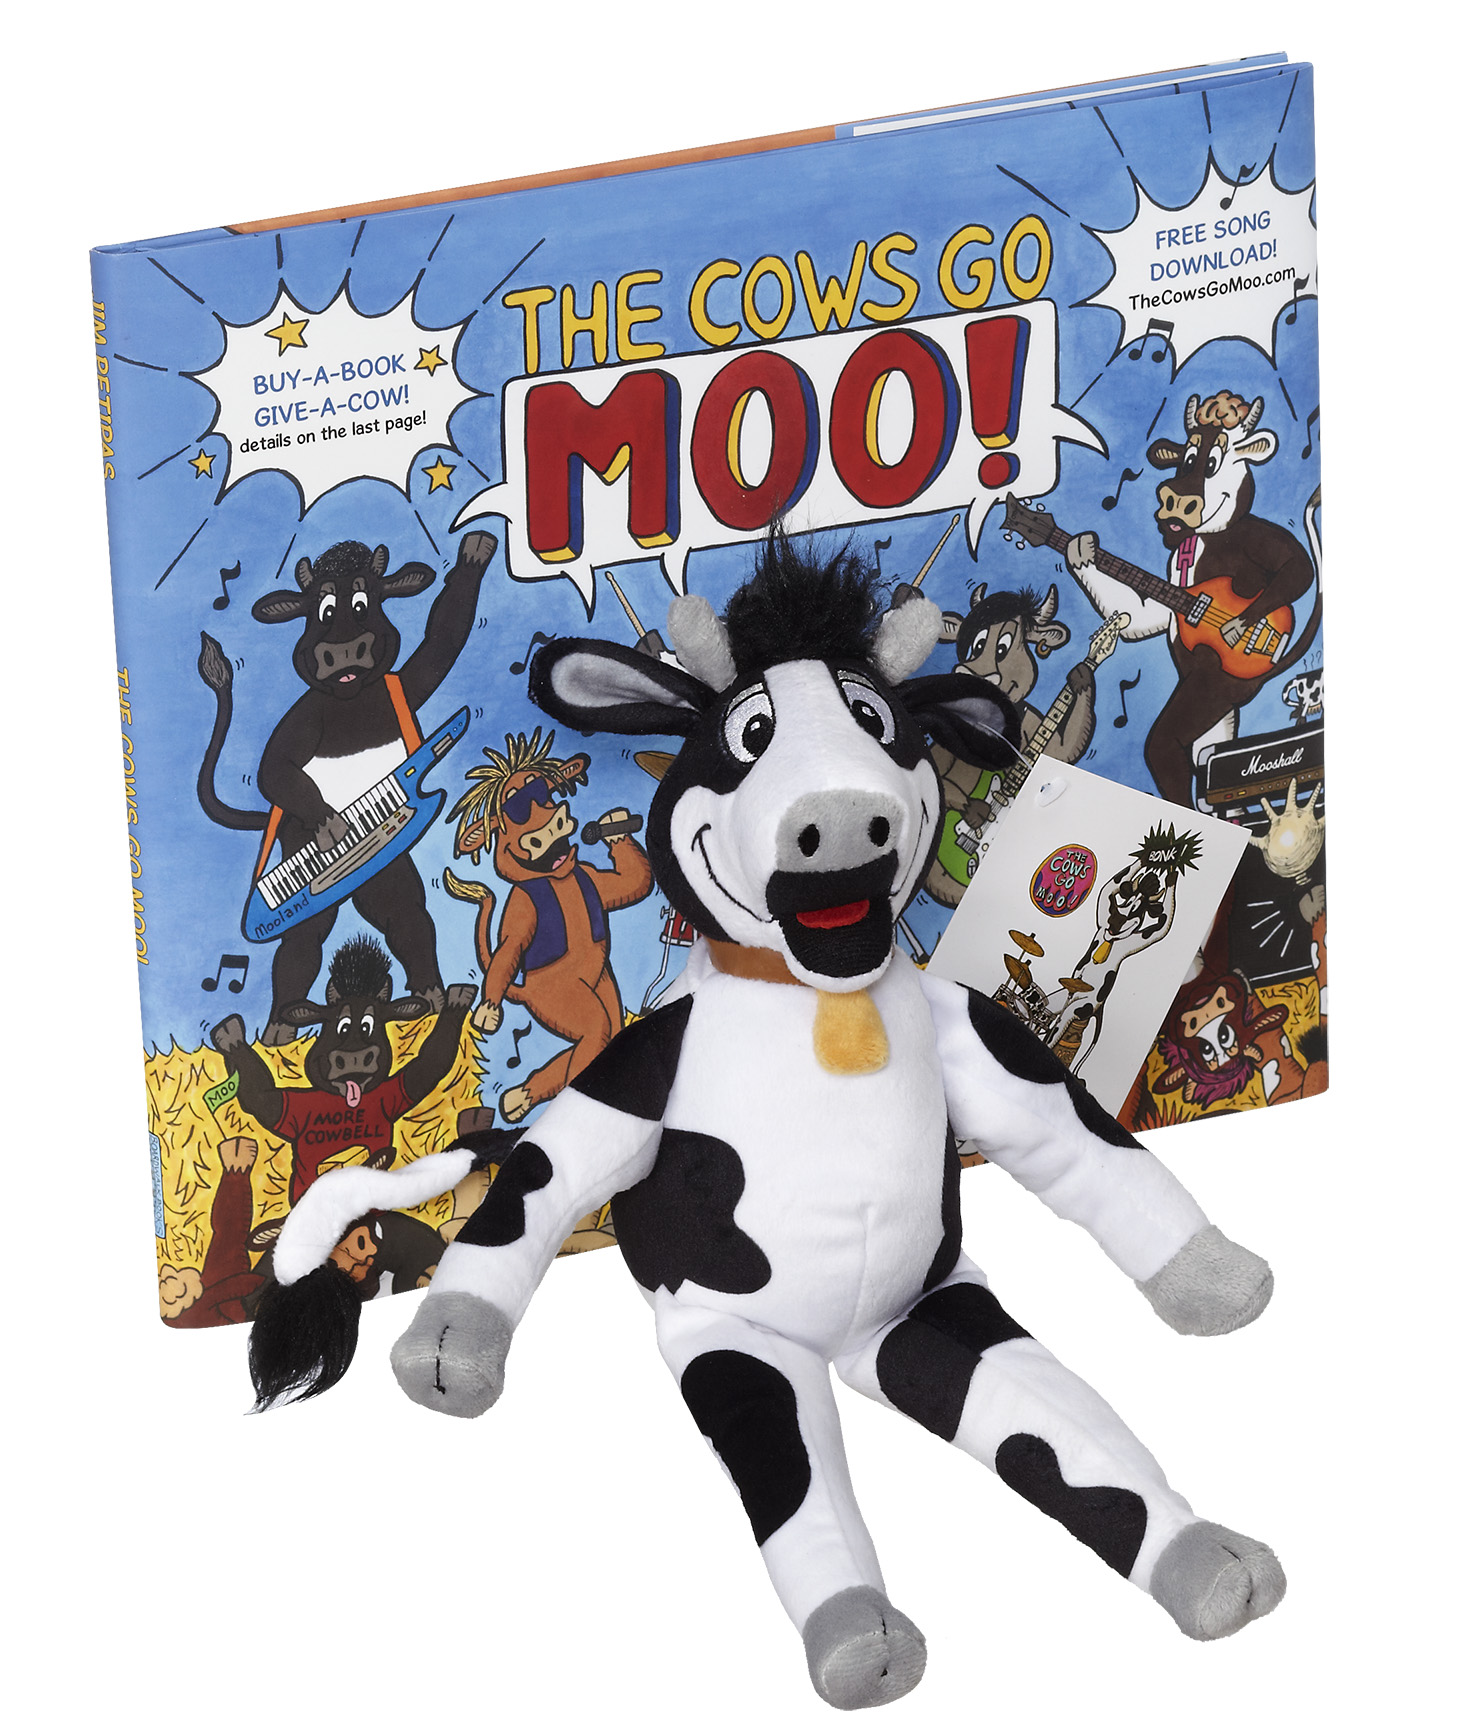 """Beaker"" the Cow Plushie is available in the Moo Merch Store!"